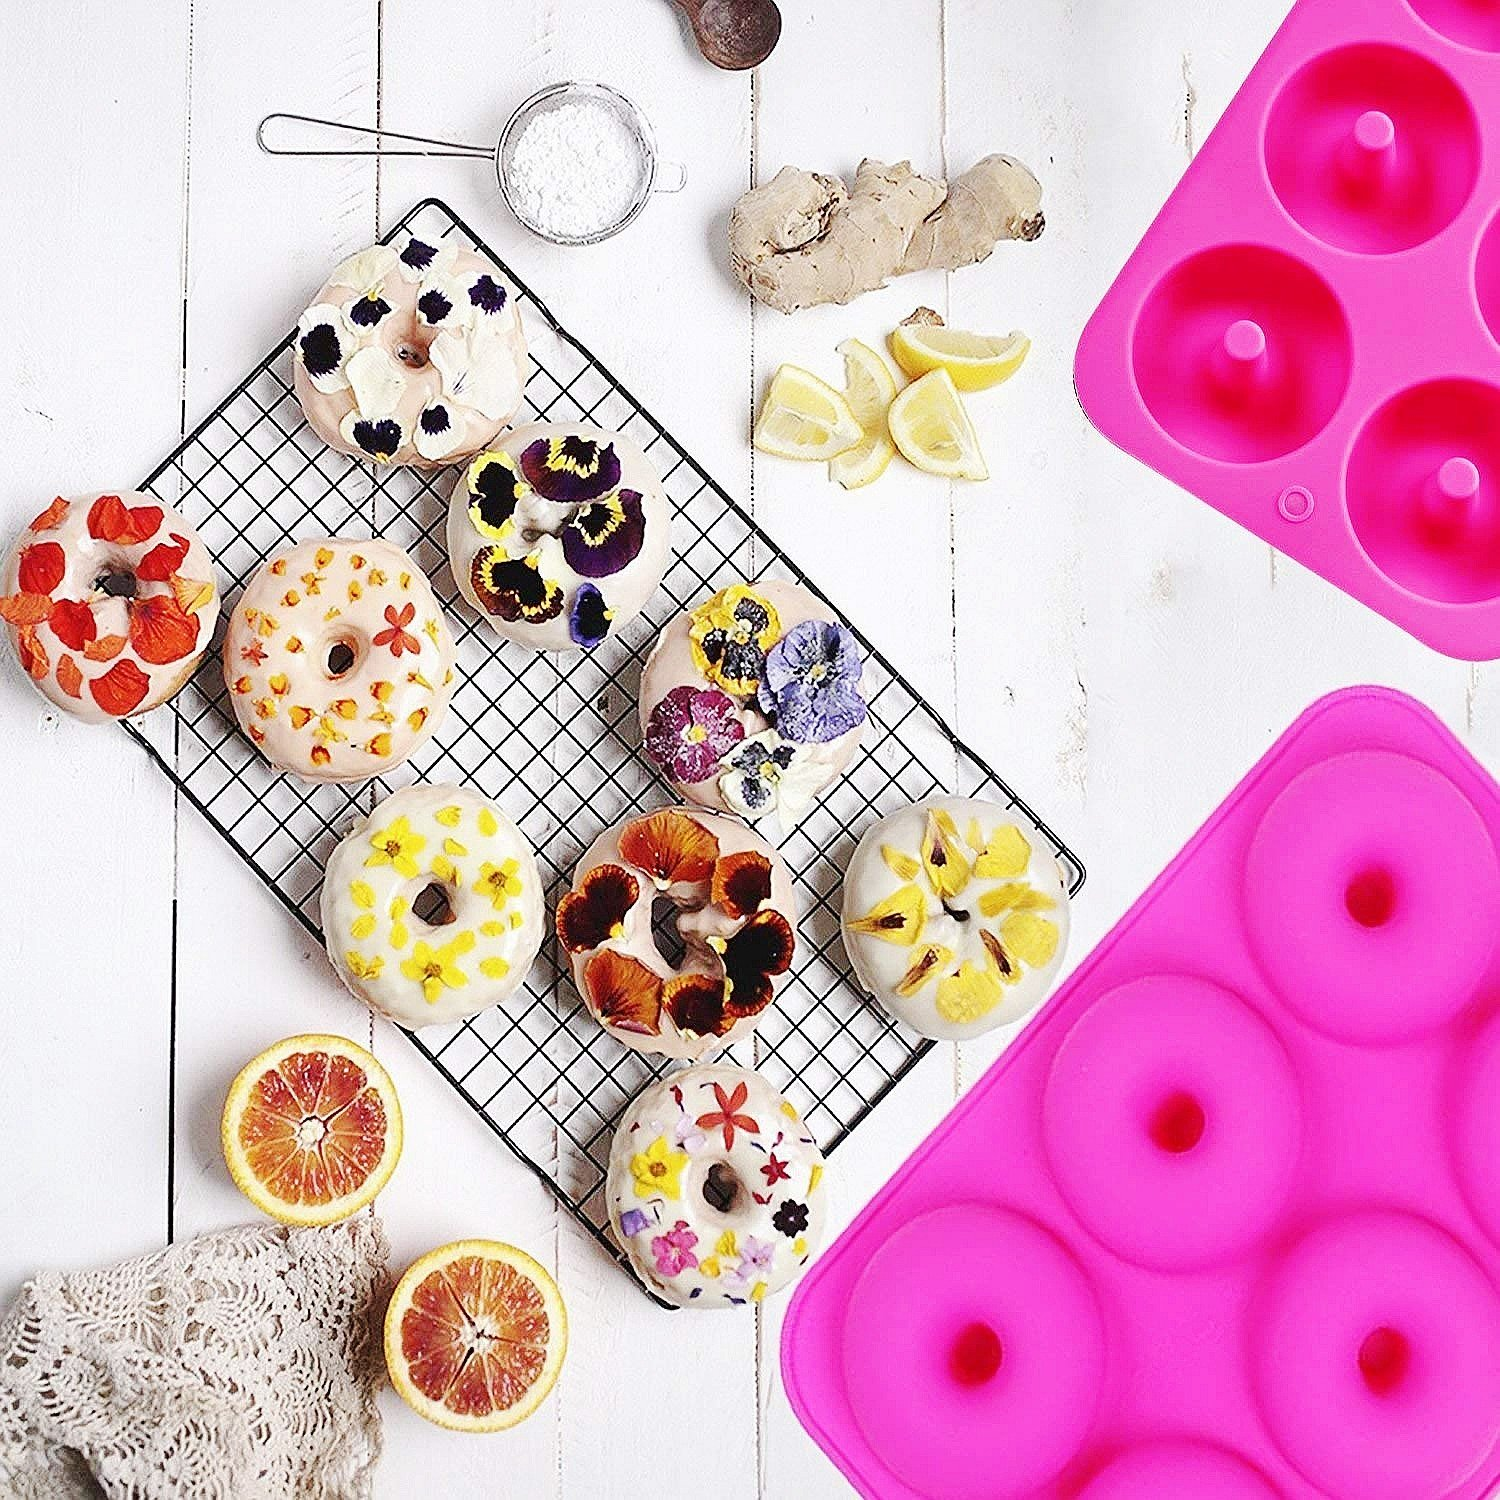 OKSANO 3 Pack Donut Molds, Silicon Cake Mold 6 Cavity Non-Stick Safe Baking Tray Maker Pan Heat Resistance for Cake Biscuit Bagels Muffins-Orange, Rose Red, Green by OKSANO (Image #7)